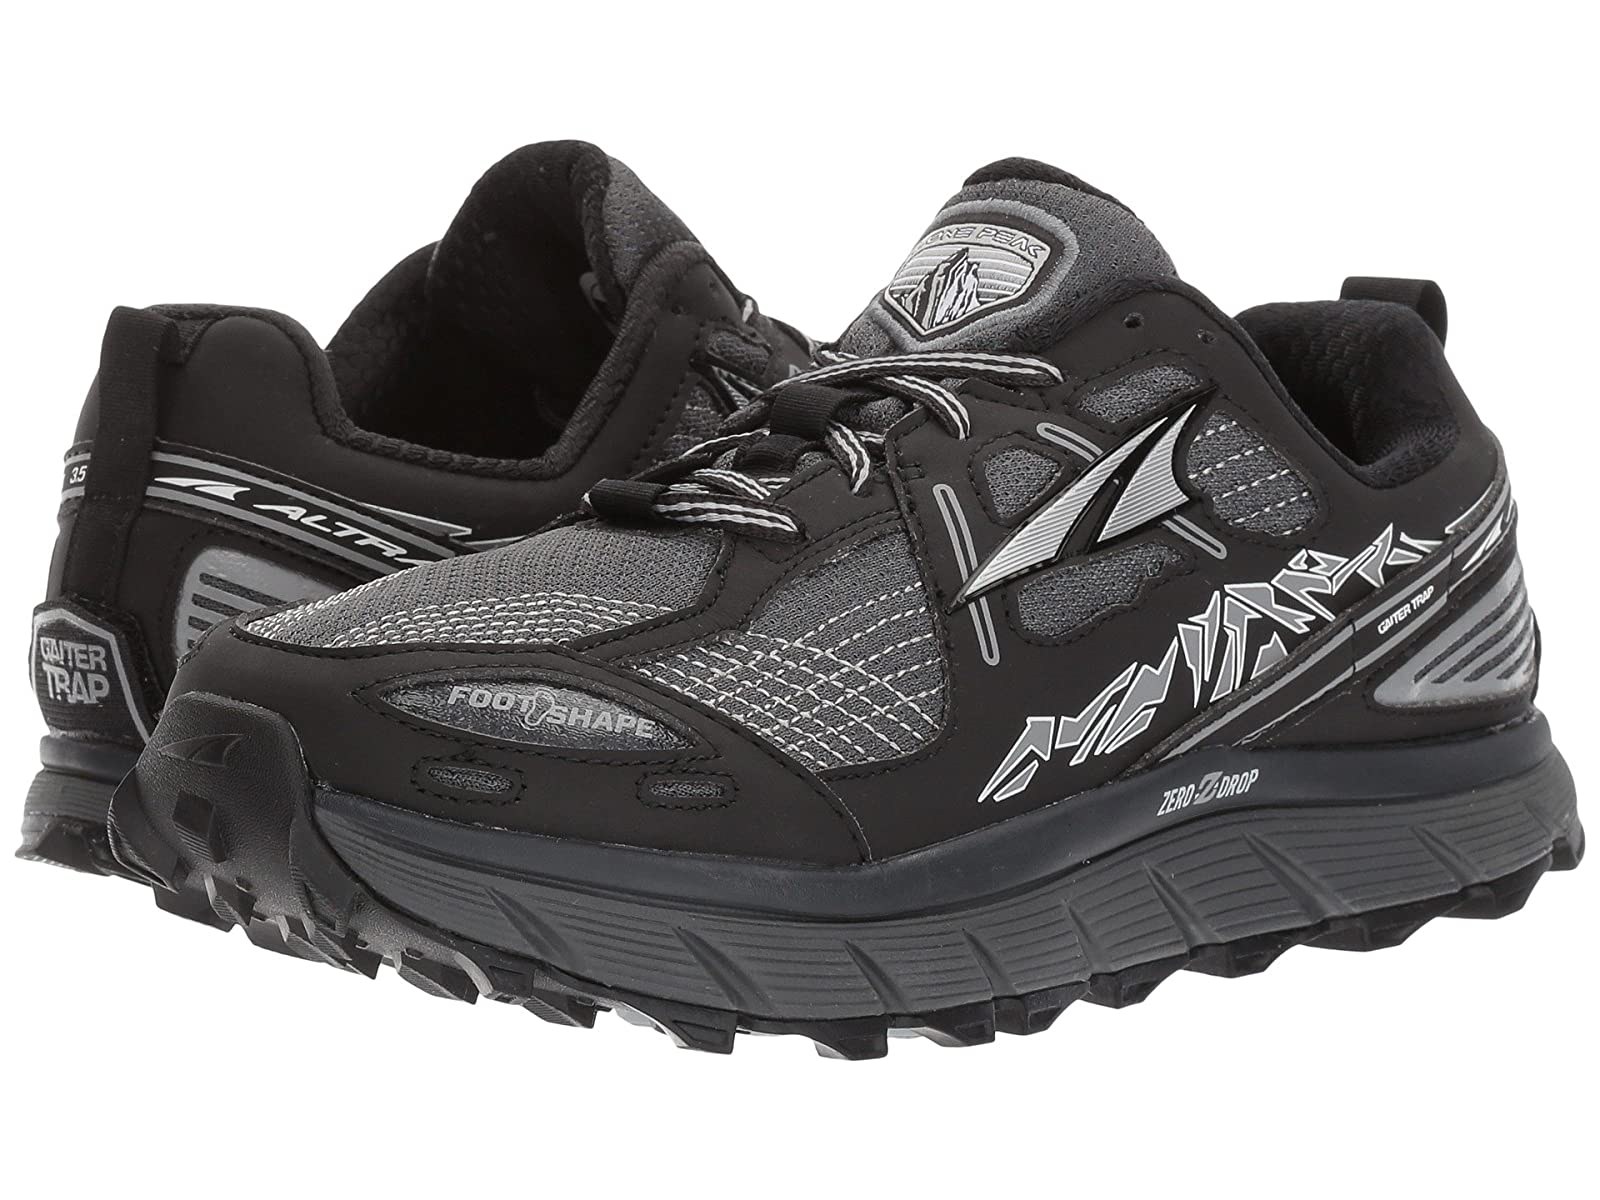 Altra Extremely Footwear Lone Peak 3.5- Extremely Altra Practical -Men/Women 45dbd3